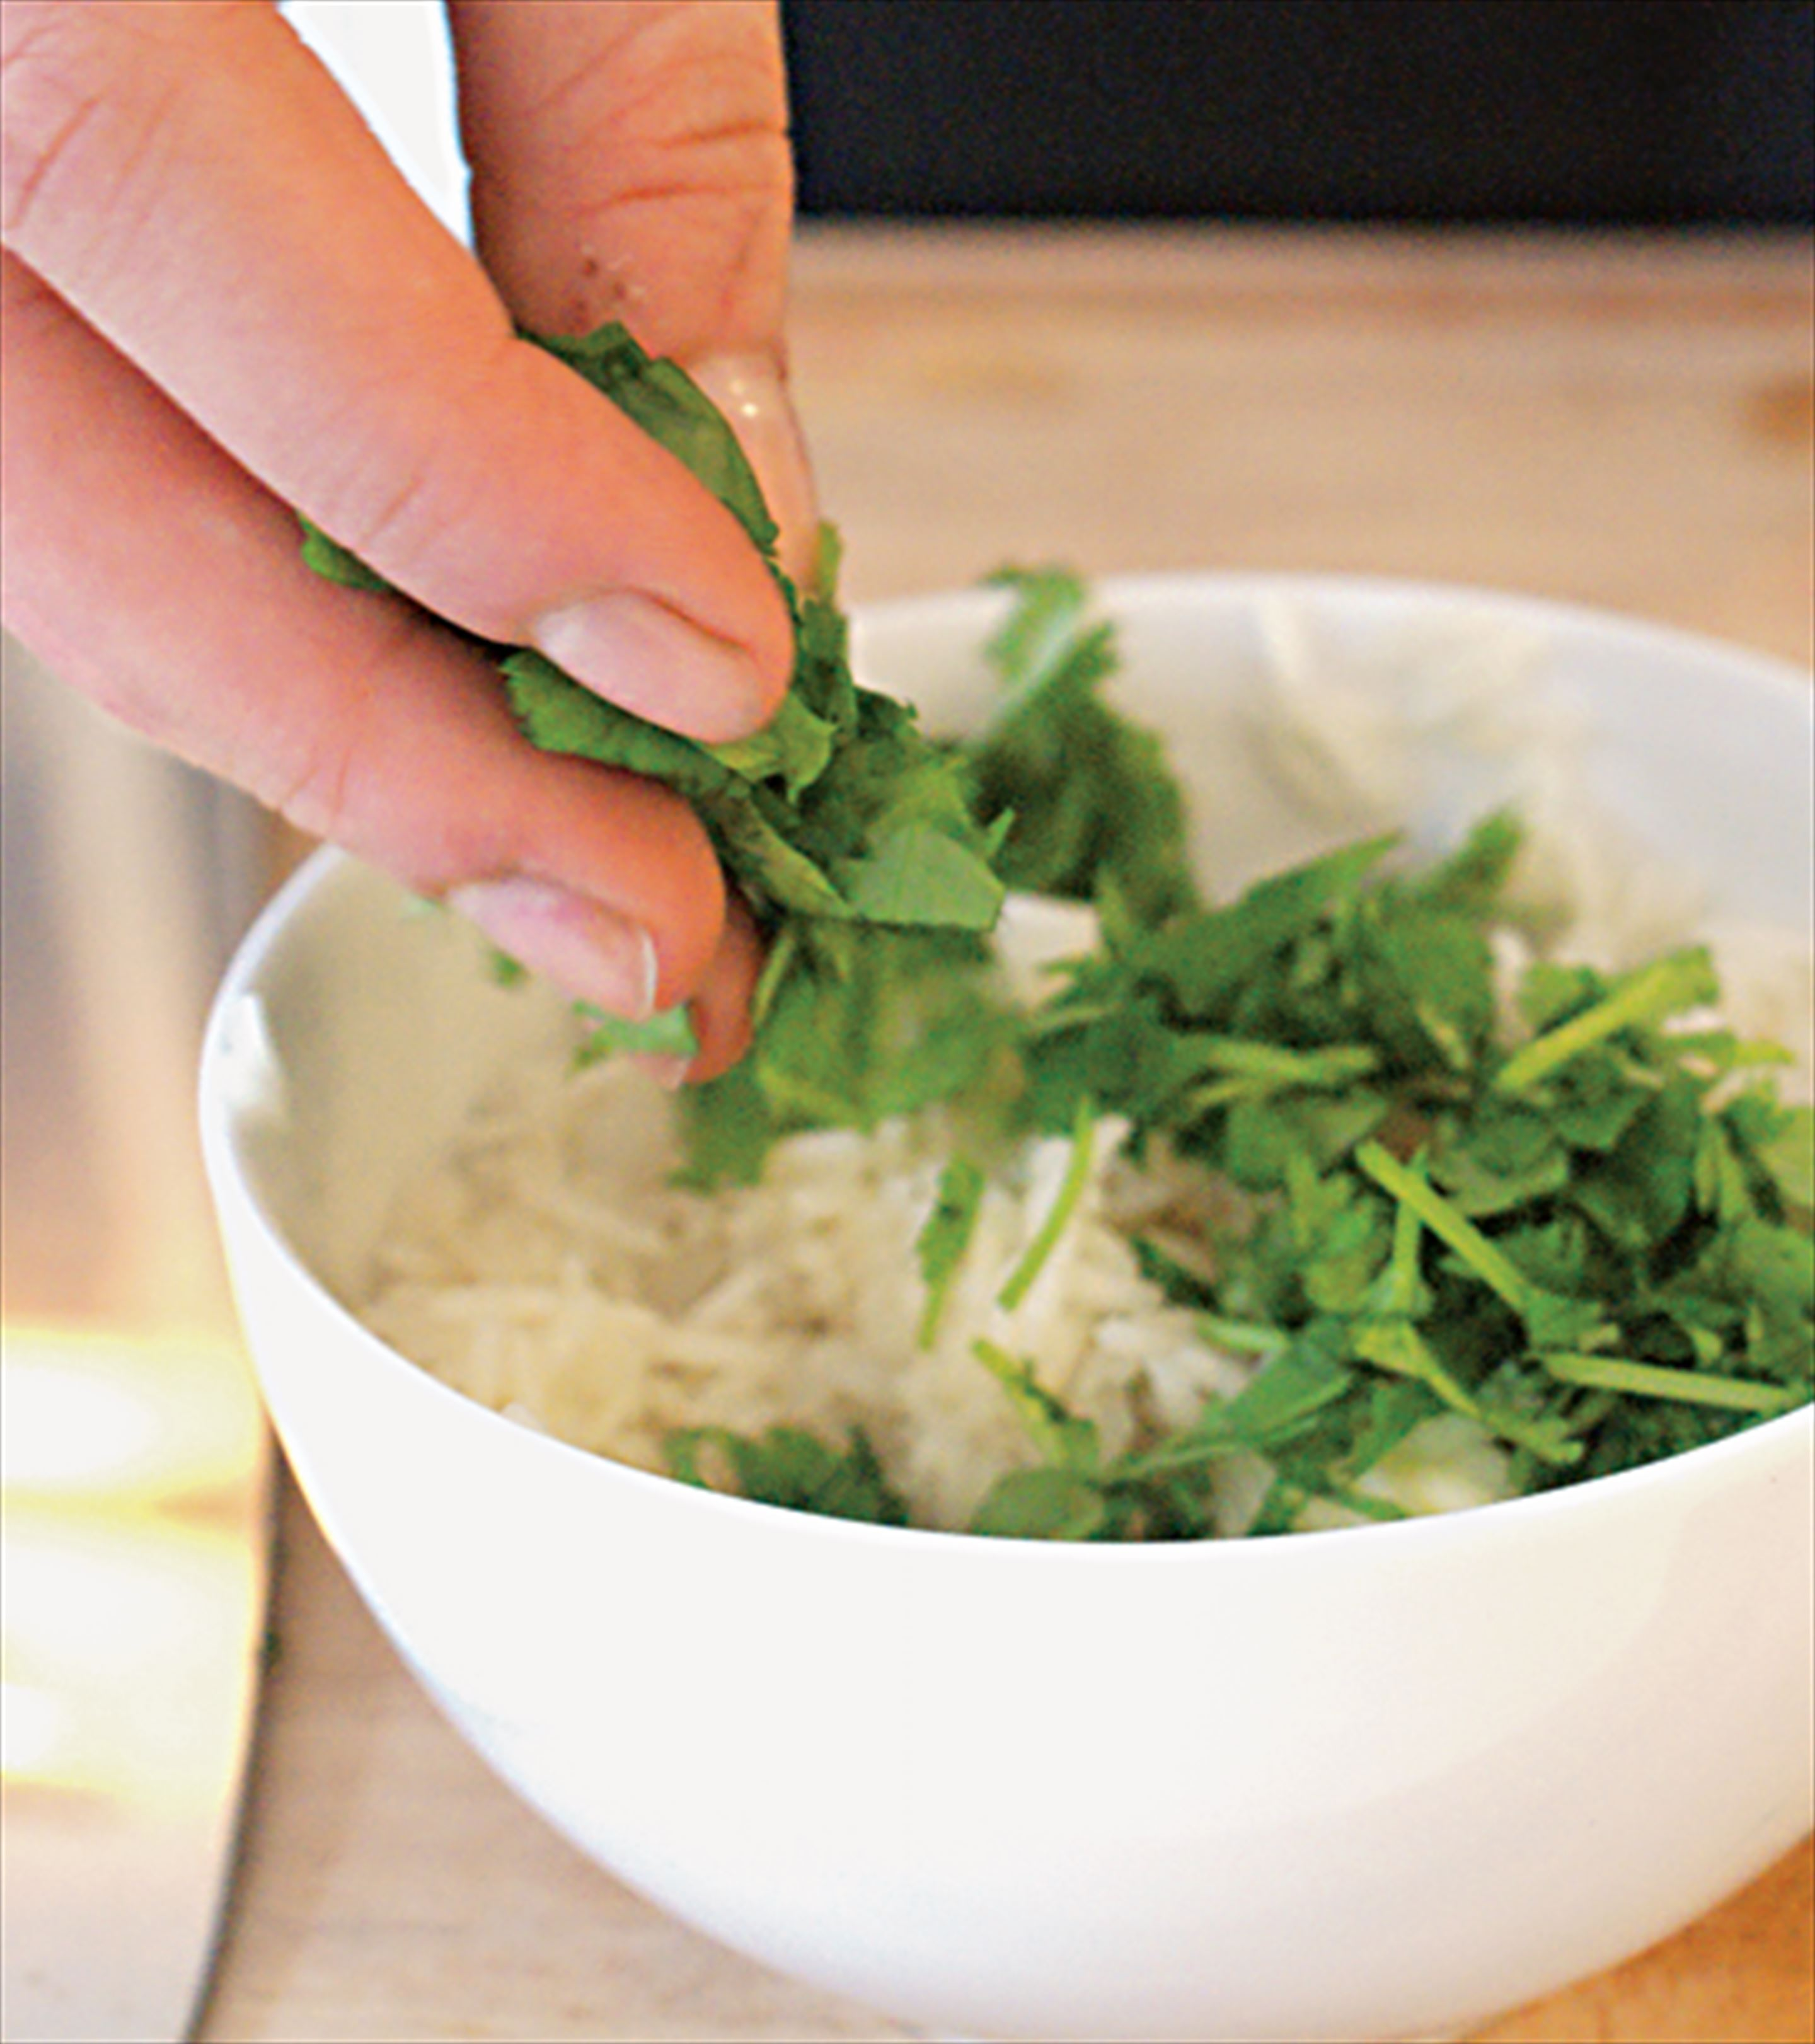 Buttered basmati with coriander